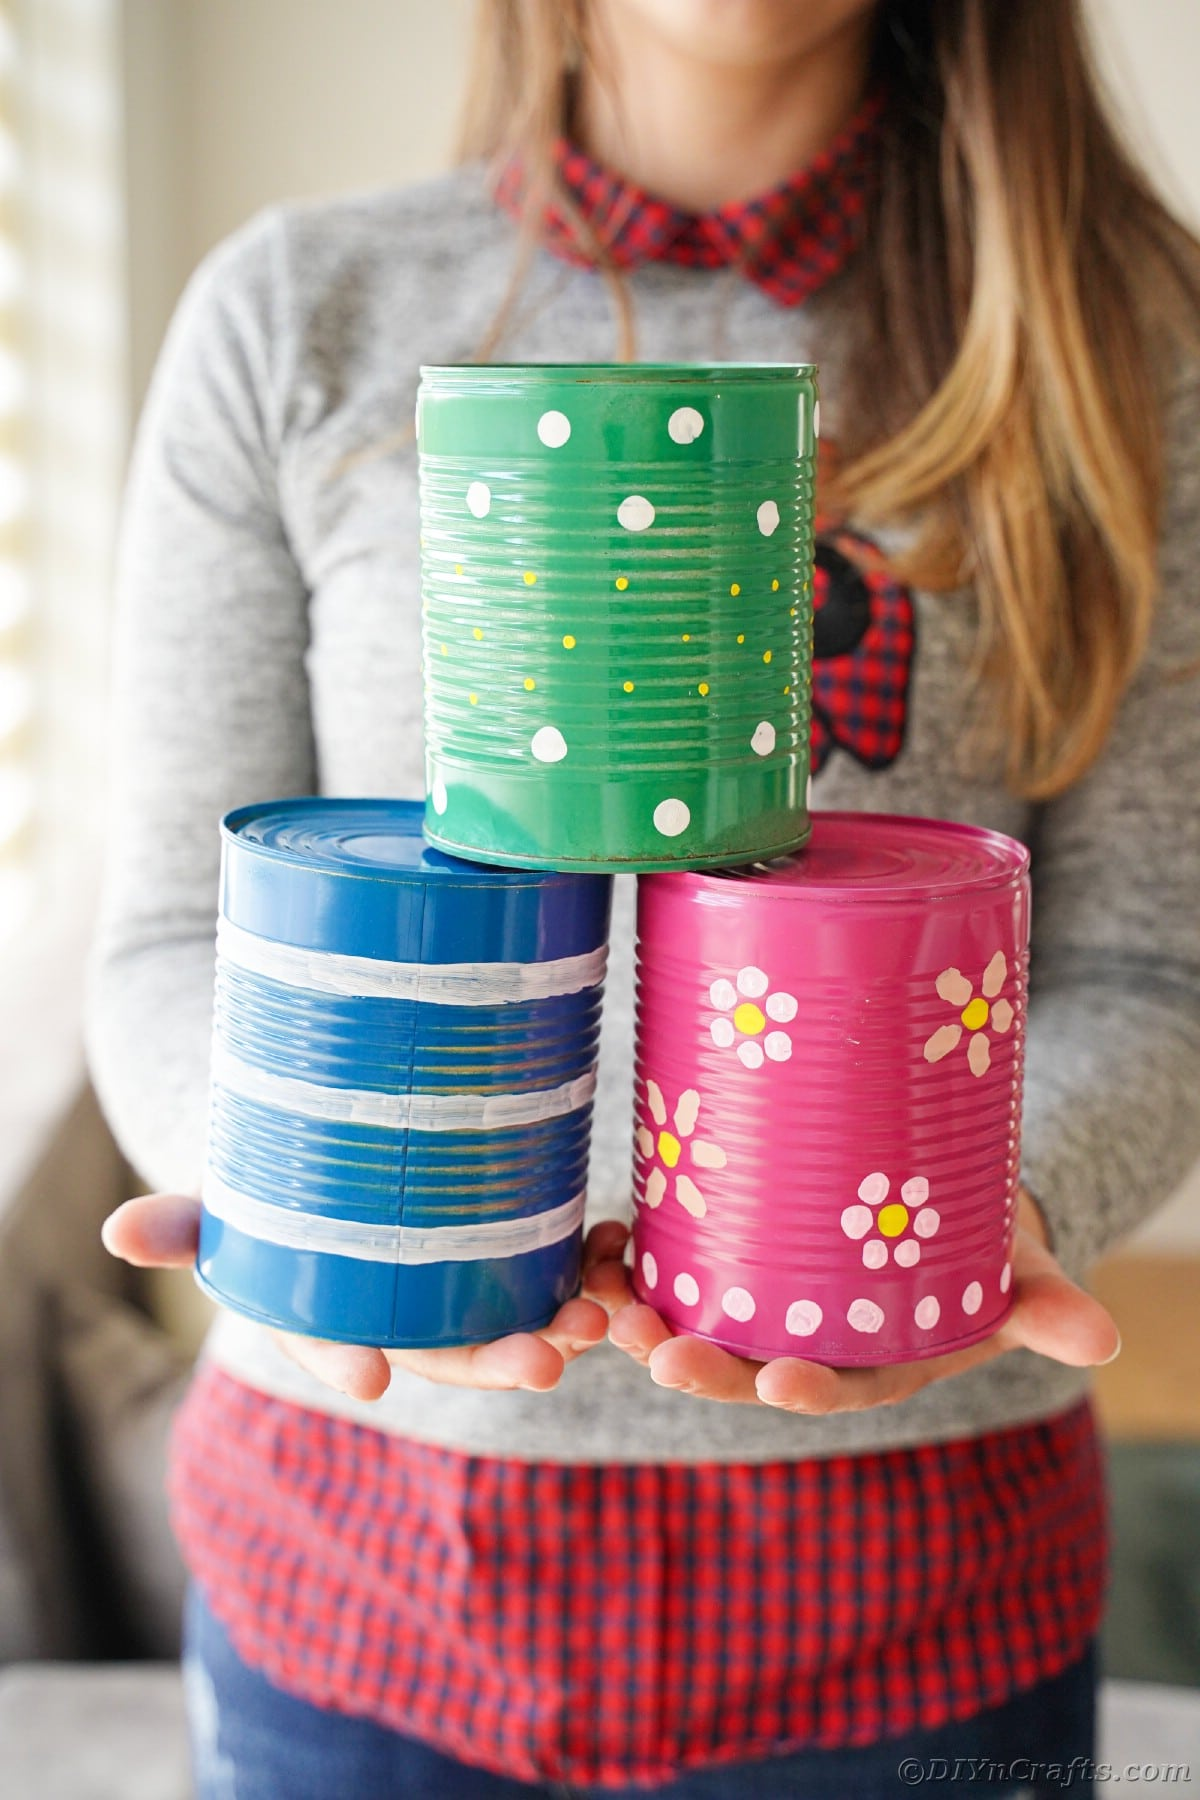 Woman holding pink green and blue tin cans